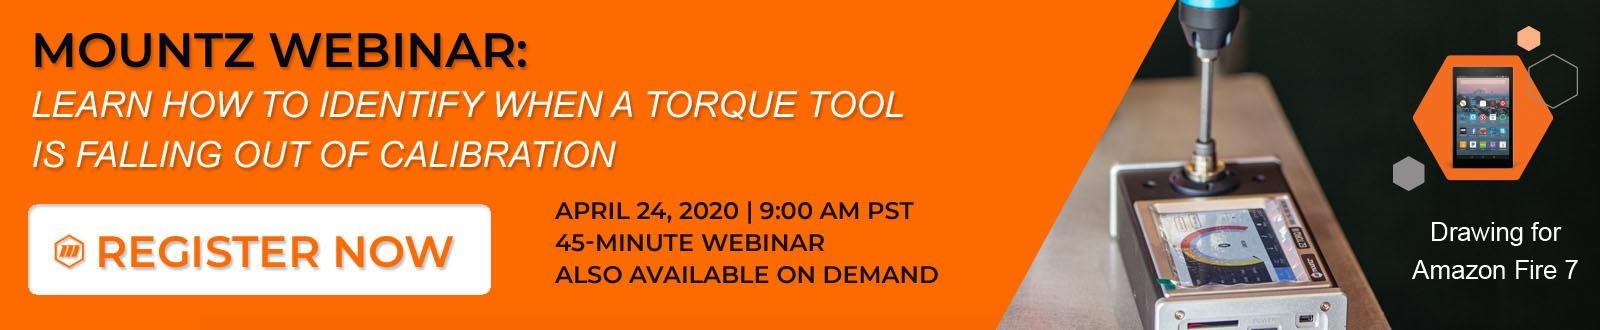 Mountz Webinar: Learn How to Identify When a Torque Tool is Falling Out of Calibration